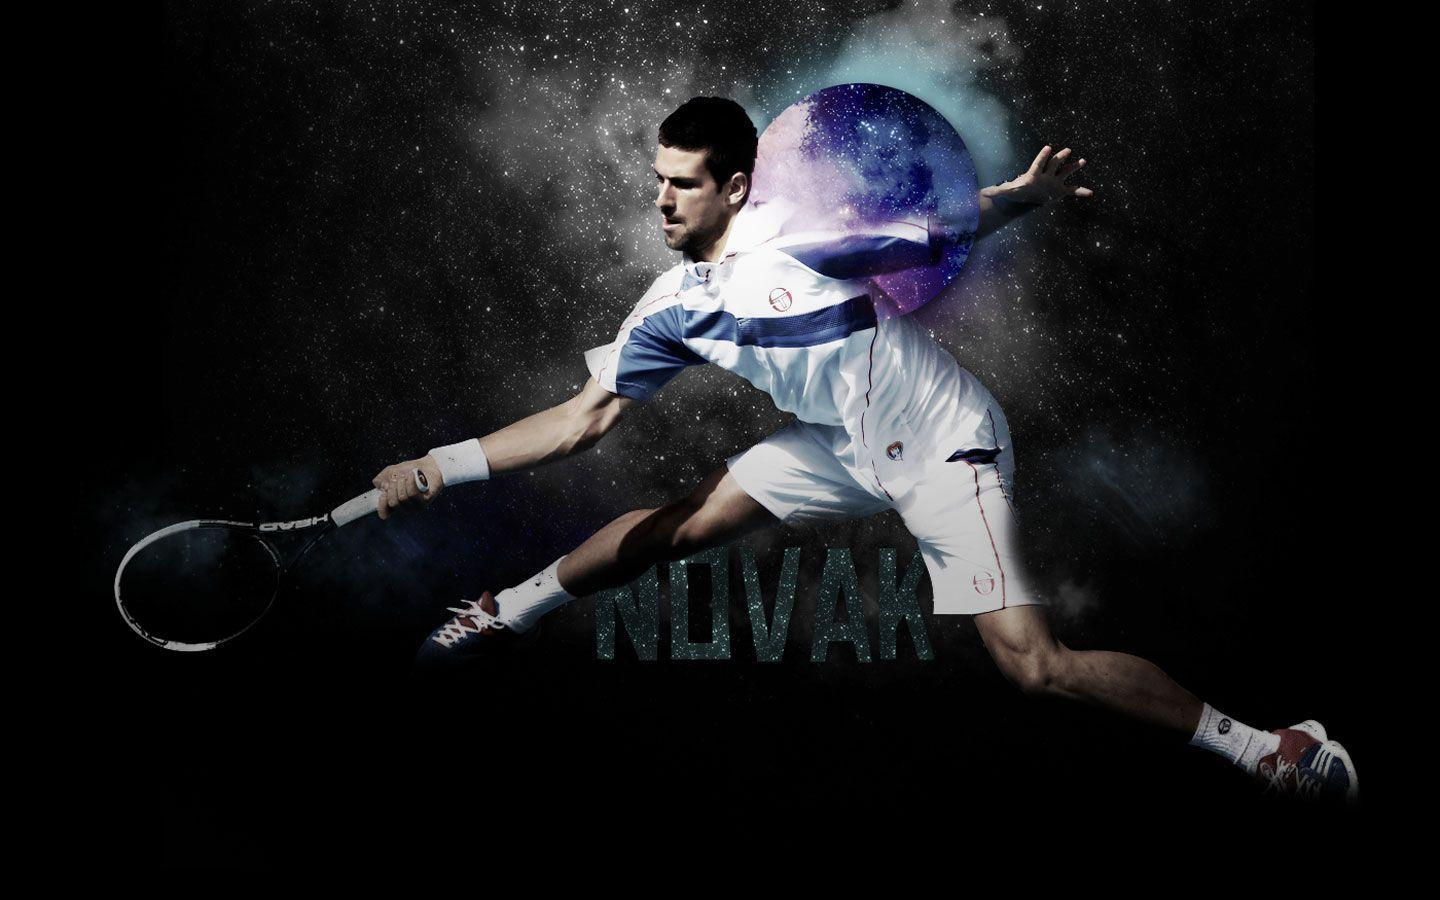 Novak Djokovic Wallpaper 2014 | Novak Djokovic Photos | New Wallpapers